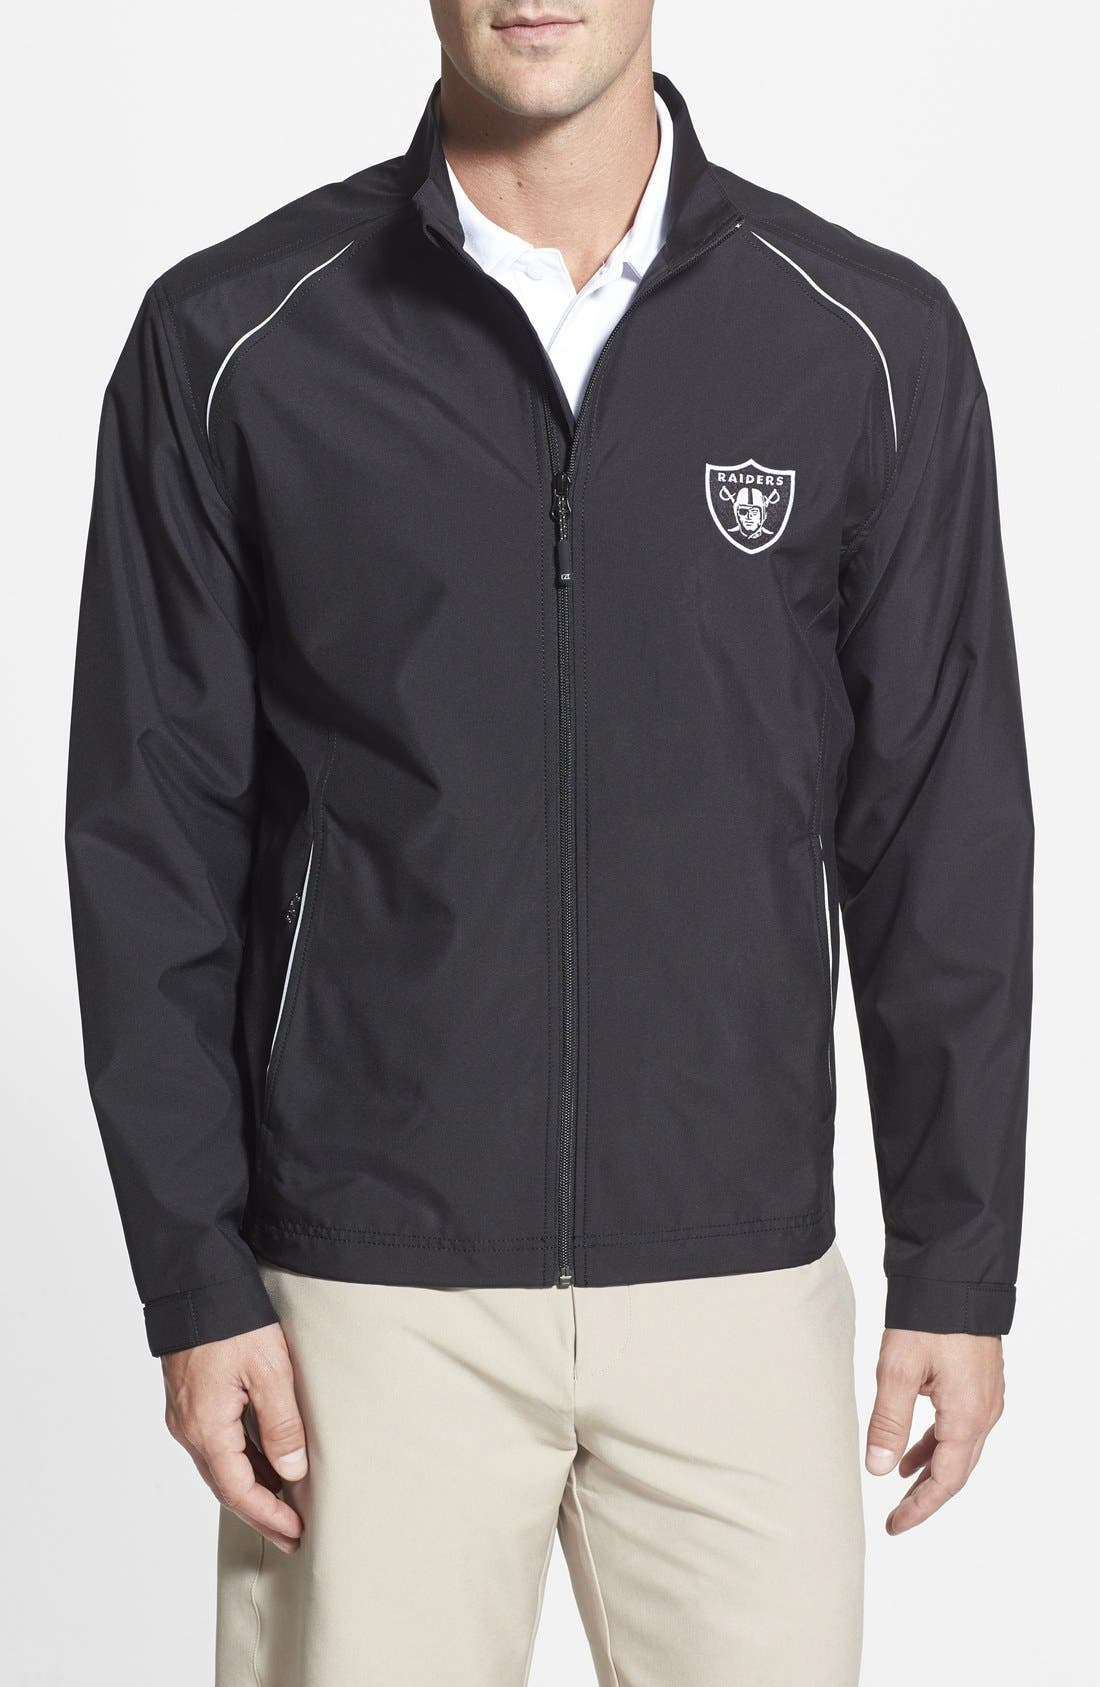 Oakland Raiders - Beacon WeatherTec Wind & Water Resistant Jacket,                         Main,                         color, 001